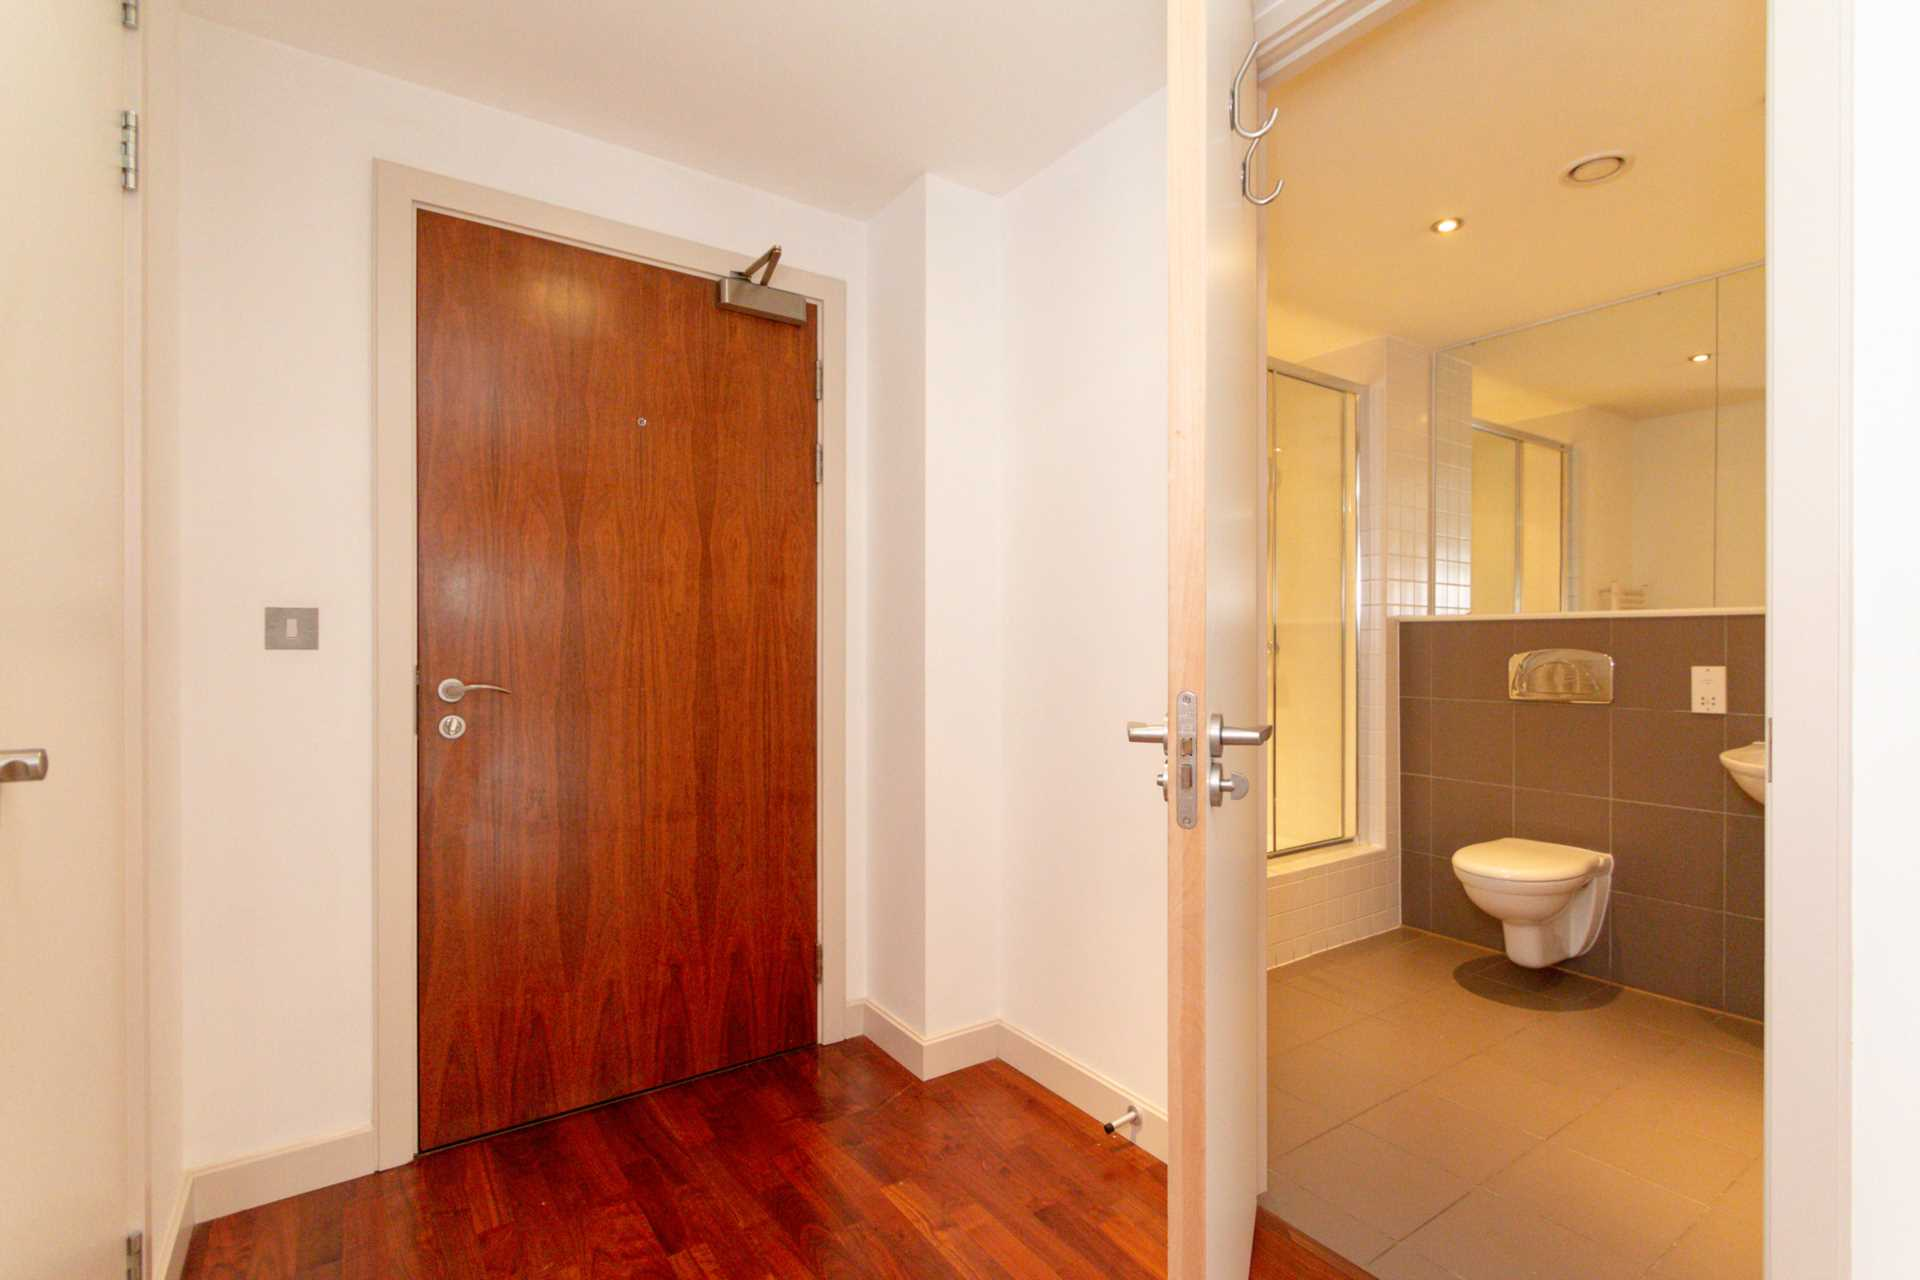 Leftbank, Manchester, VIRTUAL TOUR AVAILABLE, Image 21